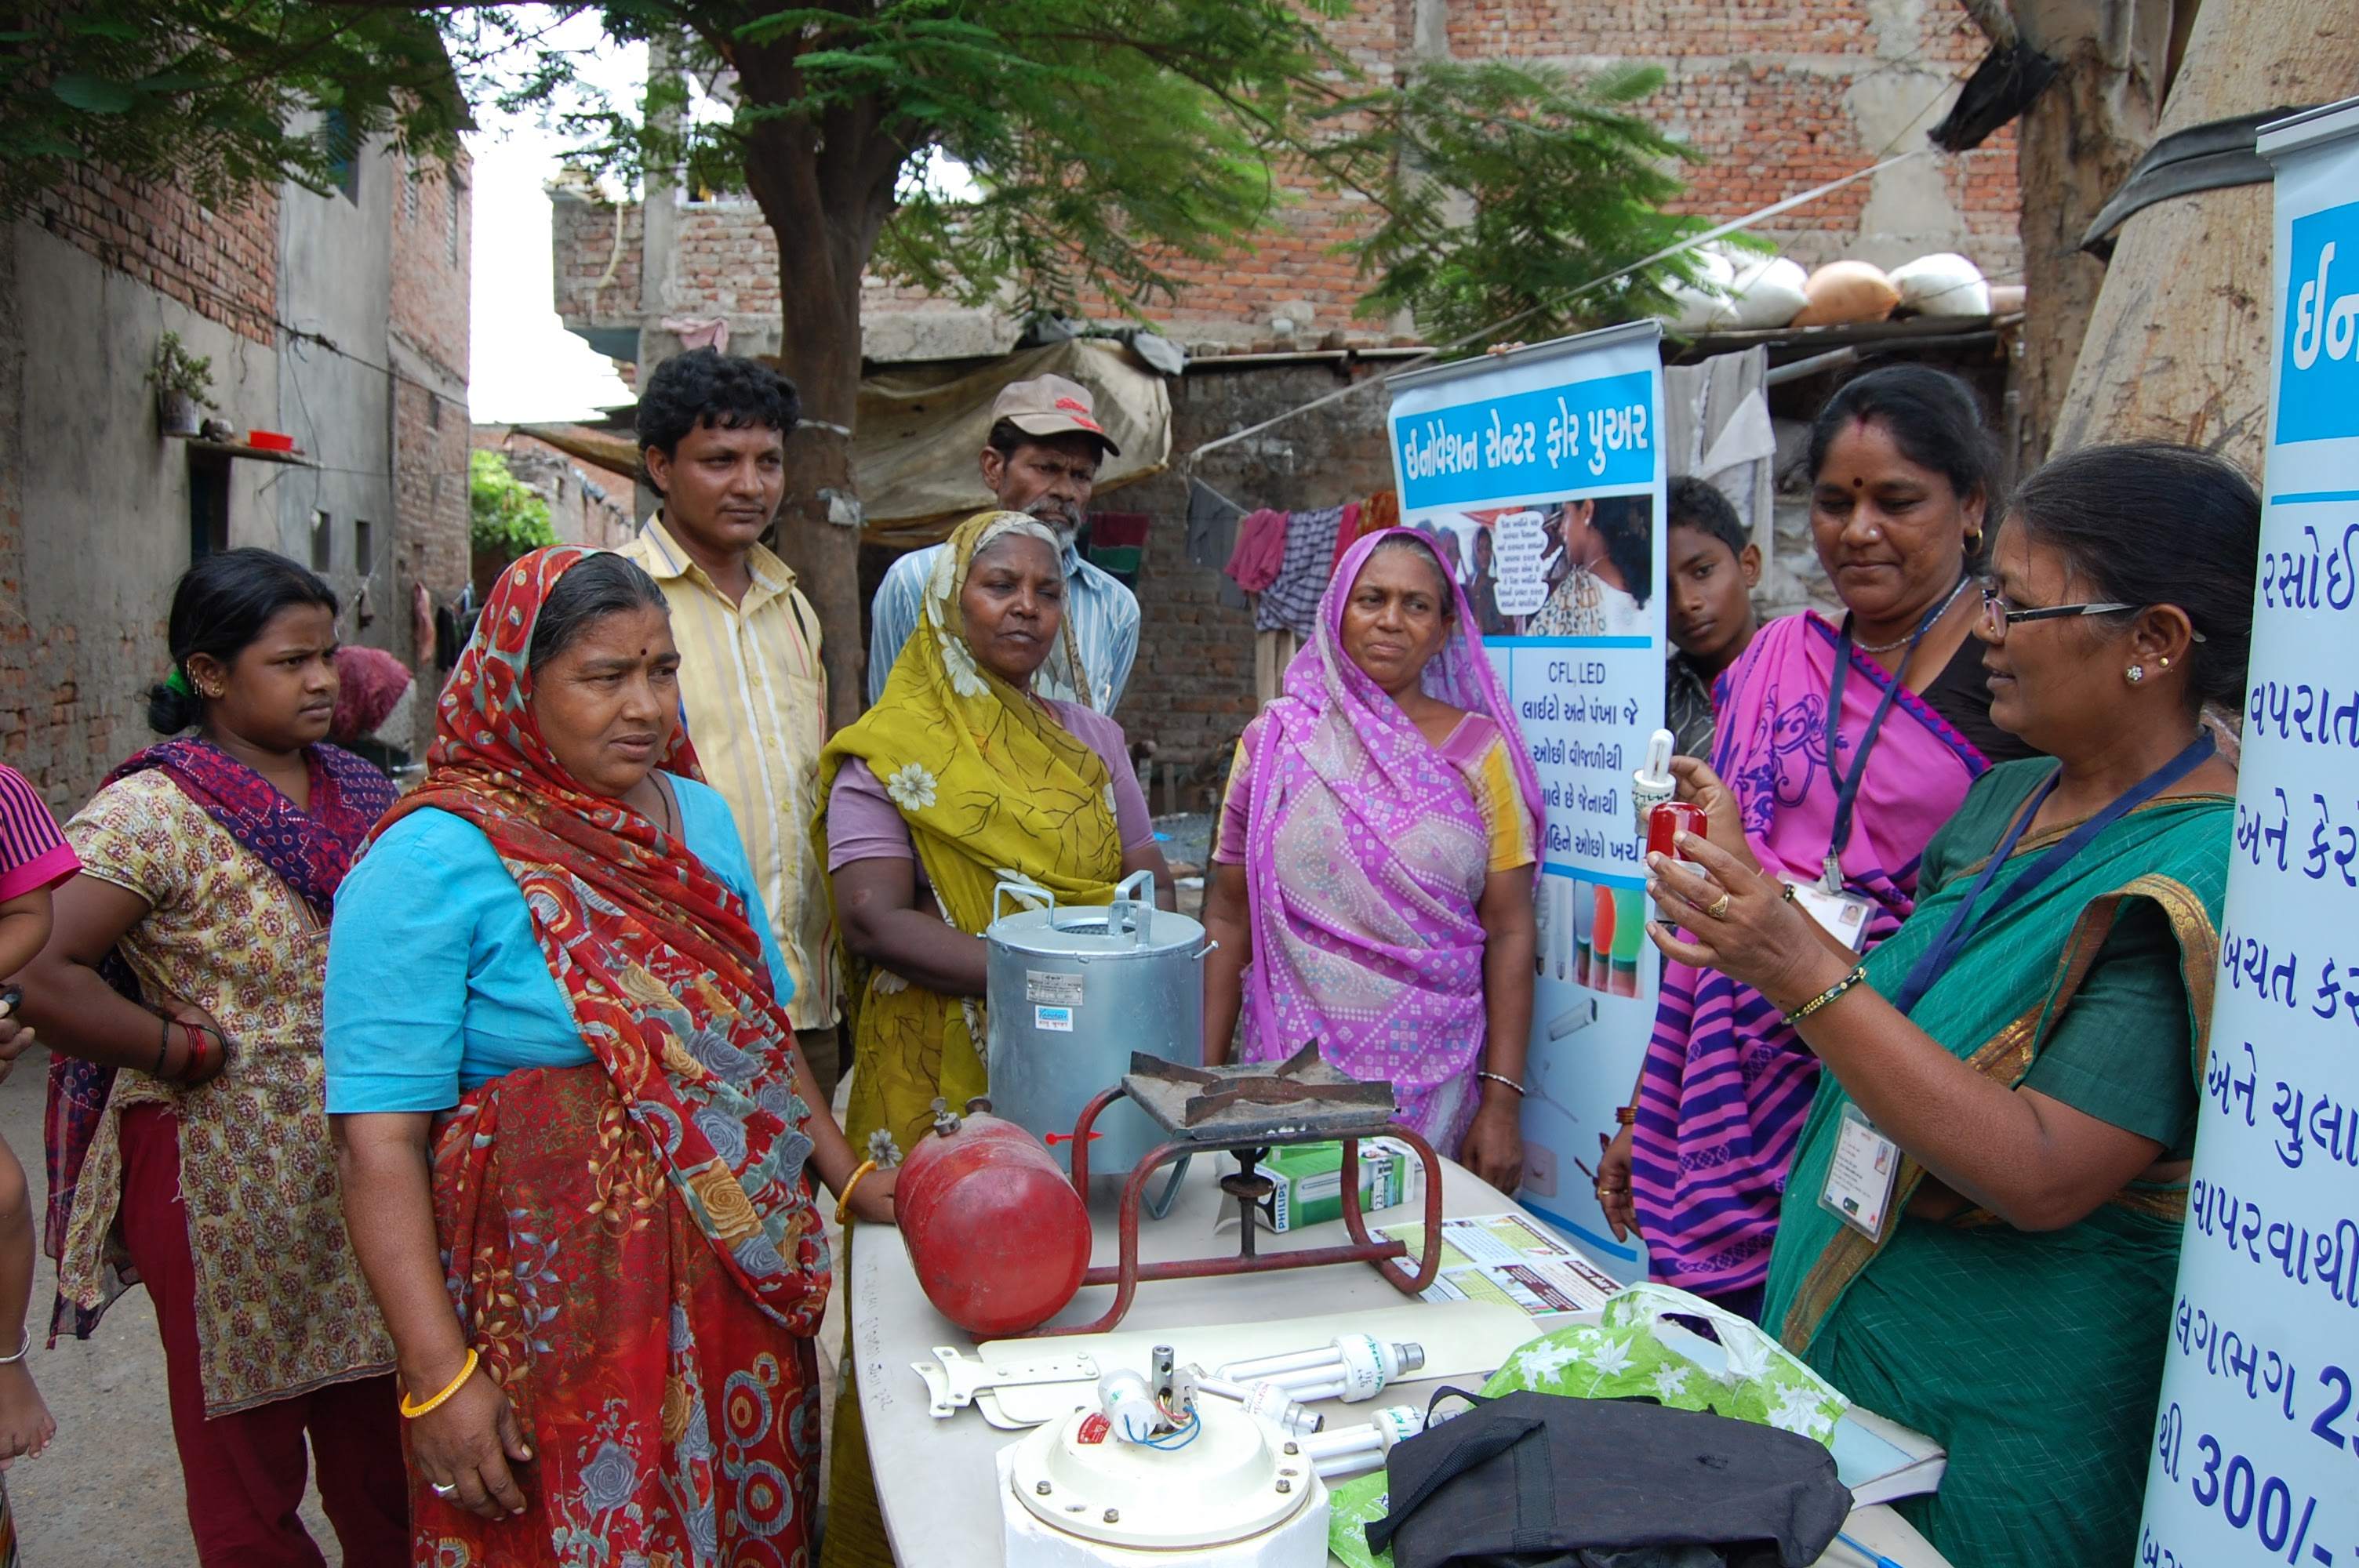 <p>A Vikasini, or local woman leader, teaches Ahmedabad residents about home energy audits. Photo by Mahila Housing Trust</p>